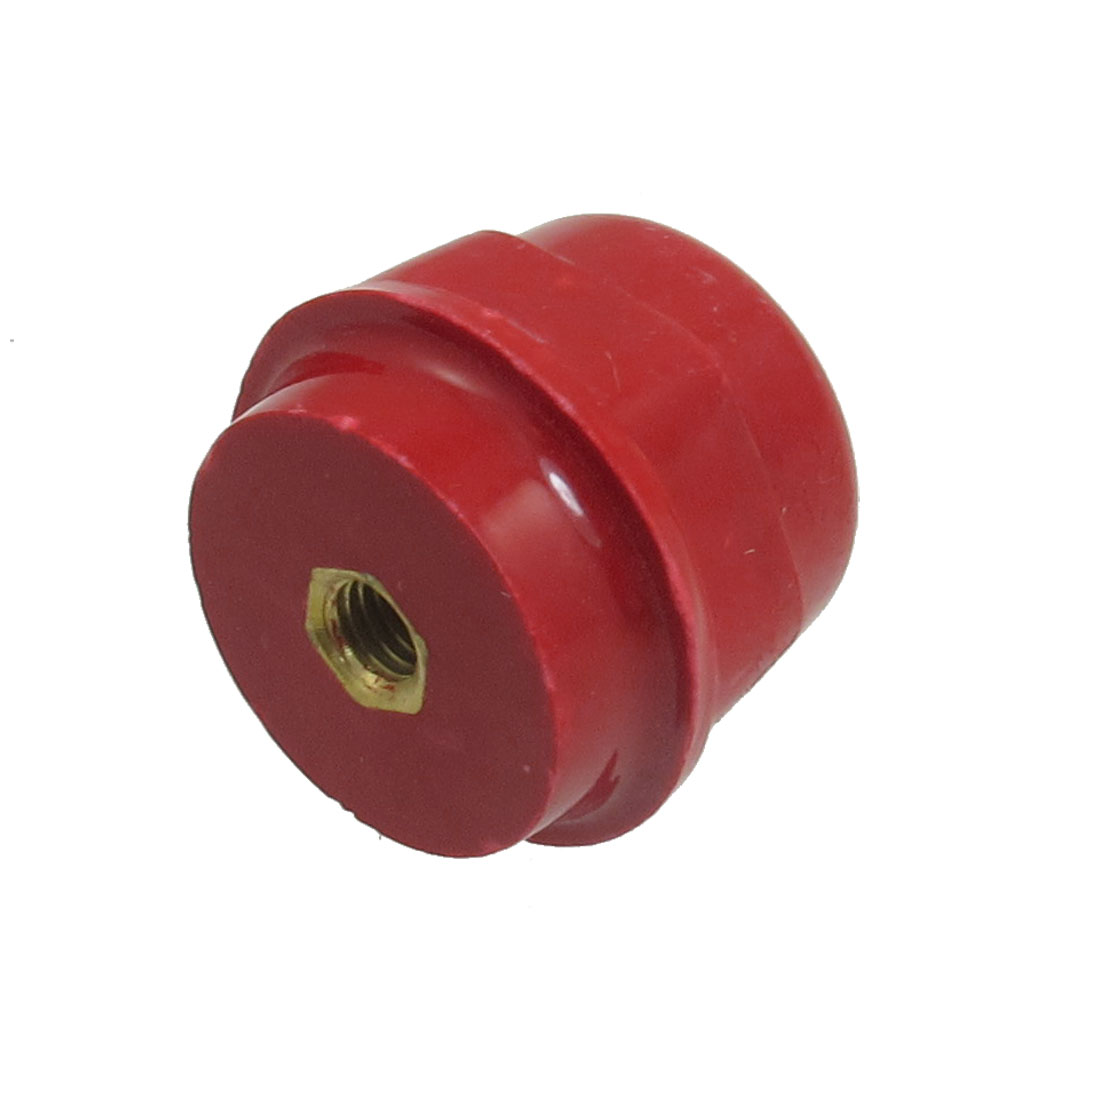 SM-25 Red Resin Enhanced Water Resistant Busbar Support Insulator